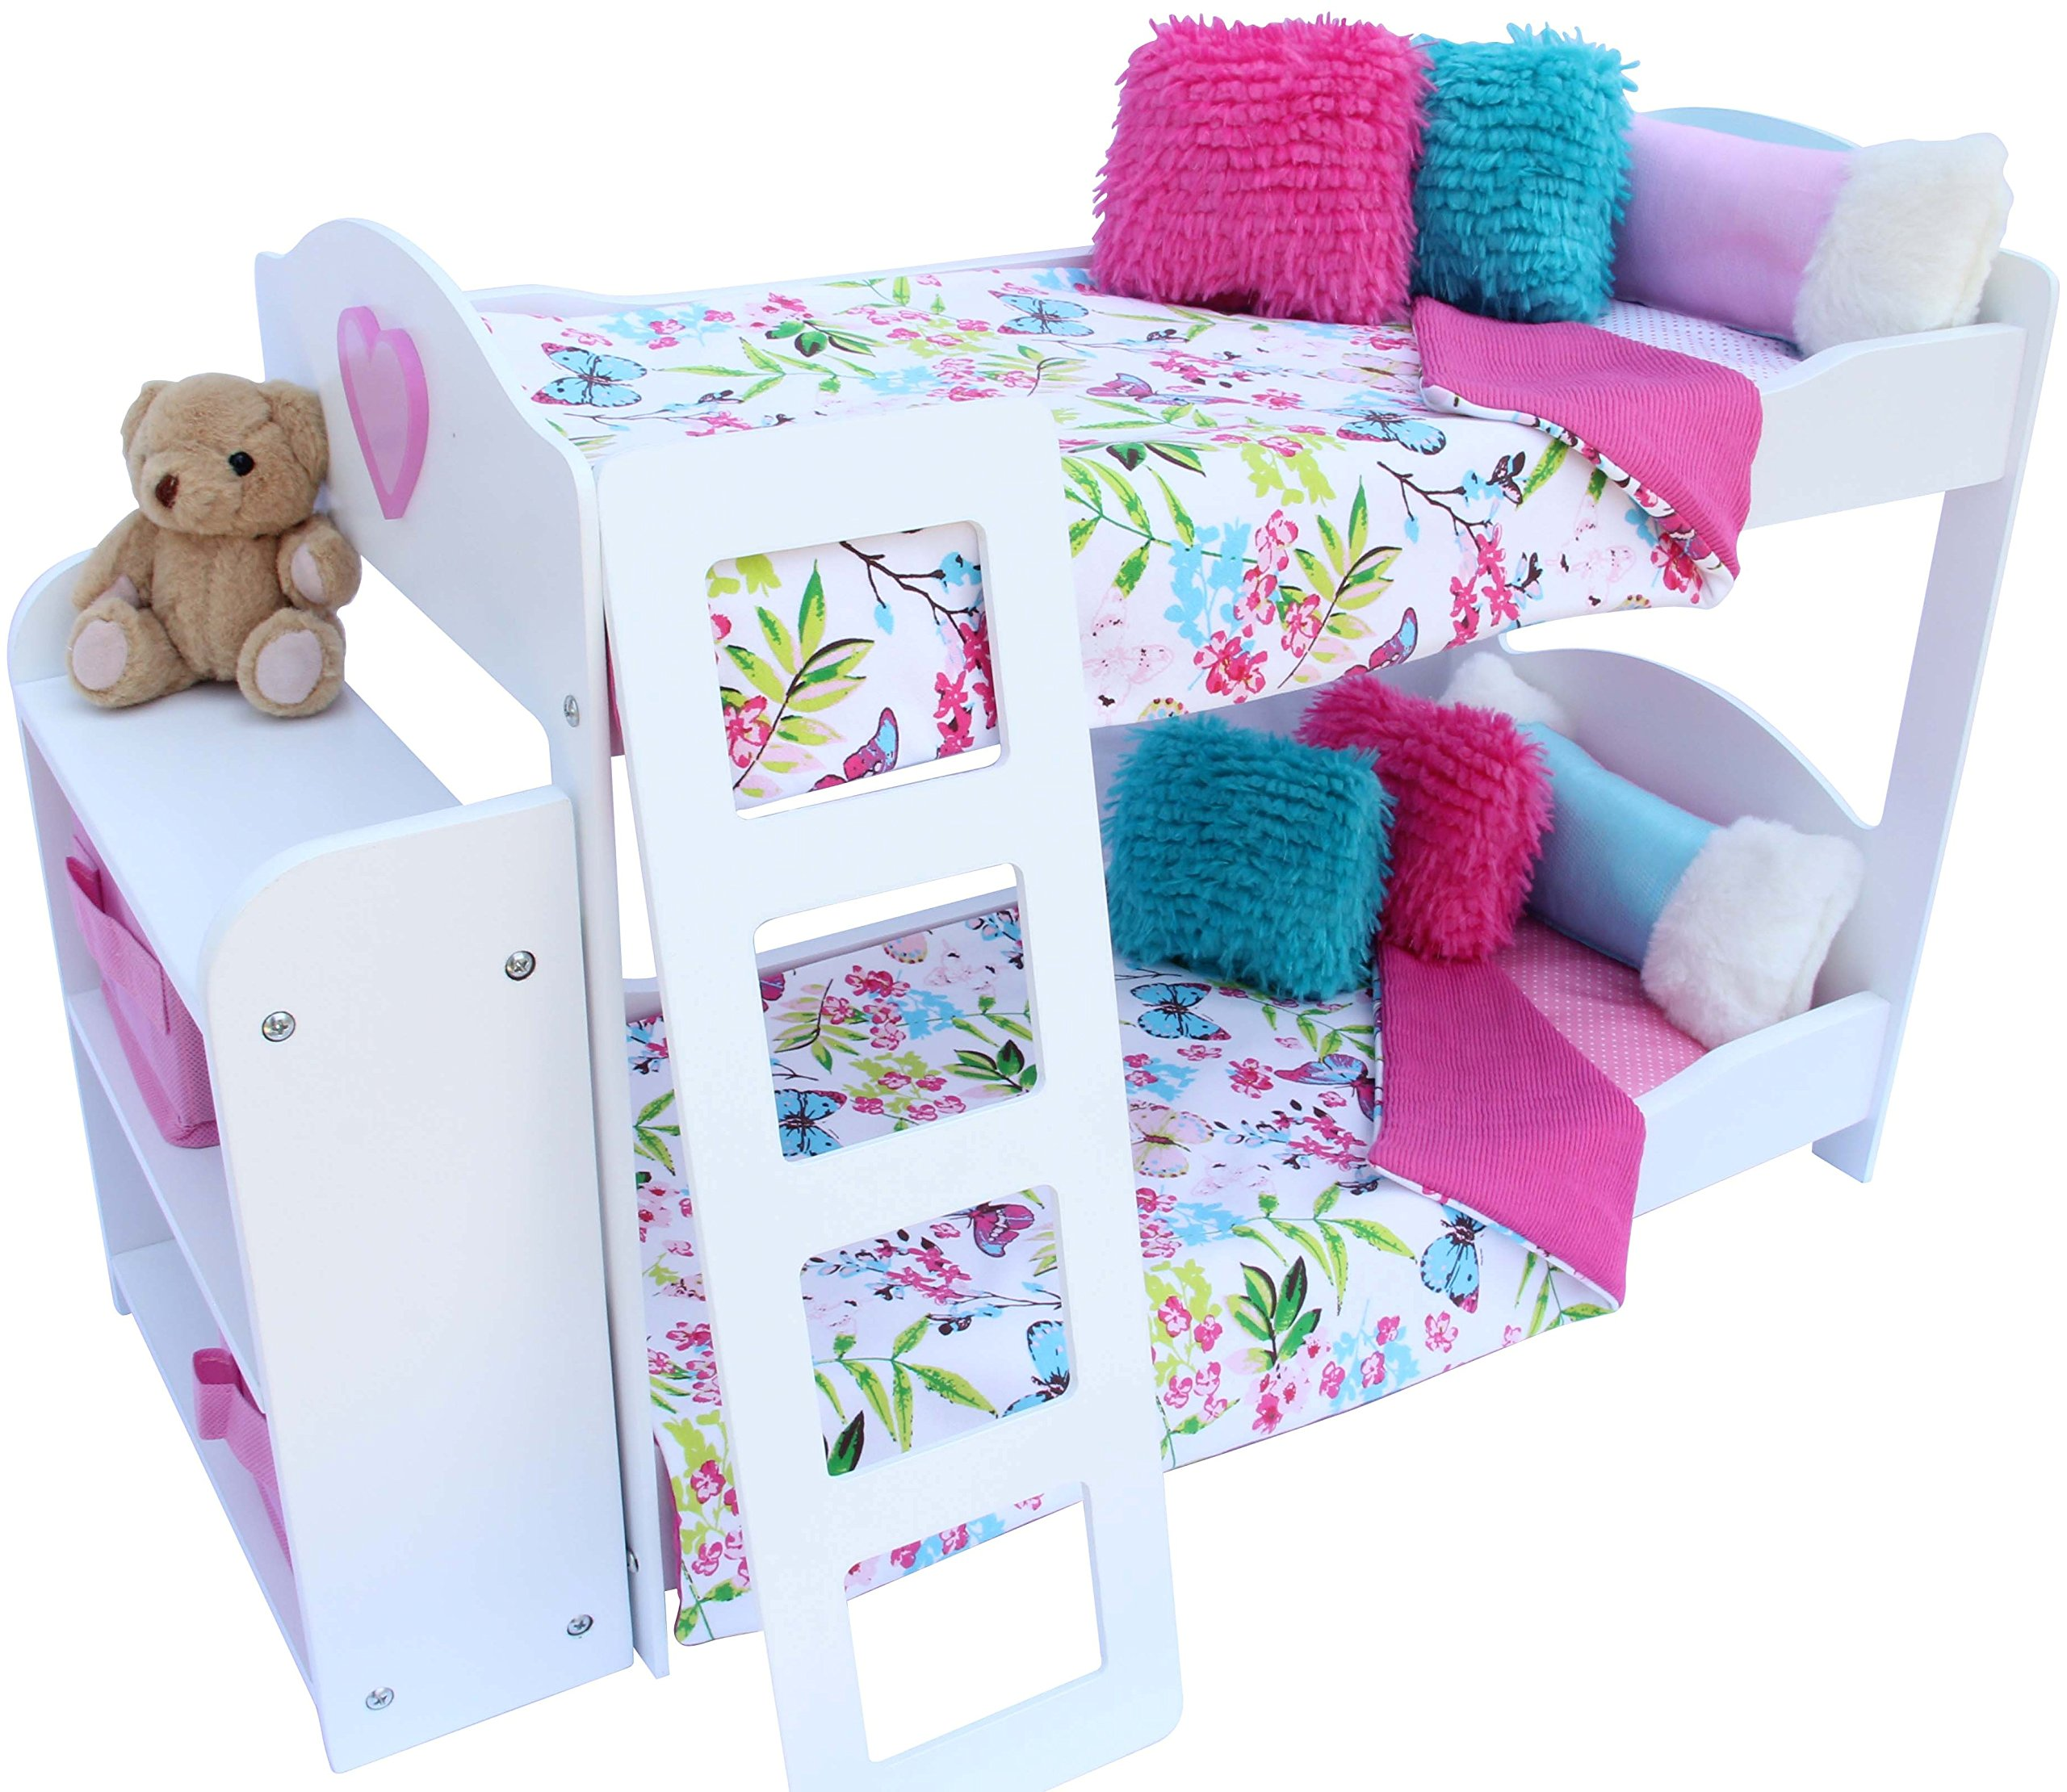 American Girl Doll Bedroom: PZAS Toys Bedroom Set For 18-Inch American Girl Doll, 20